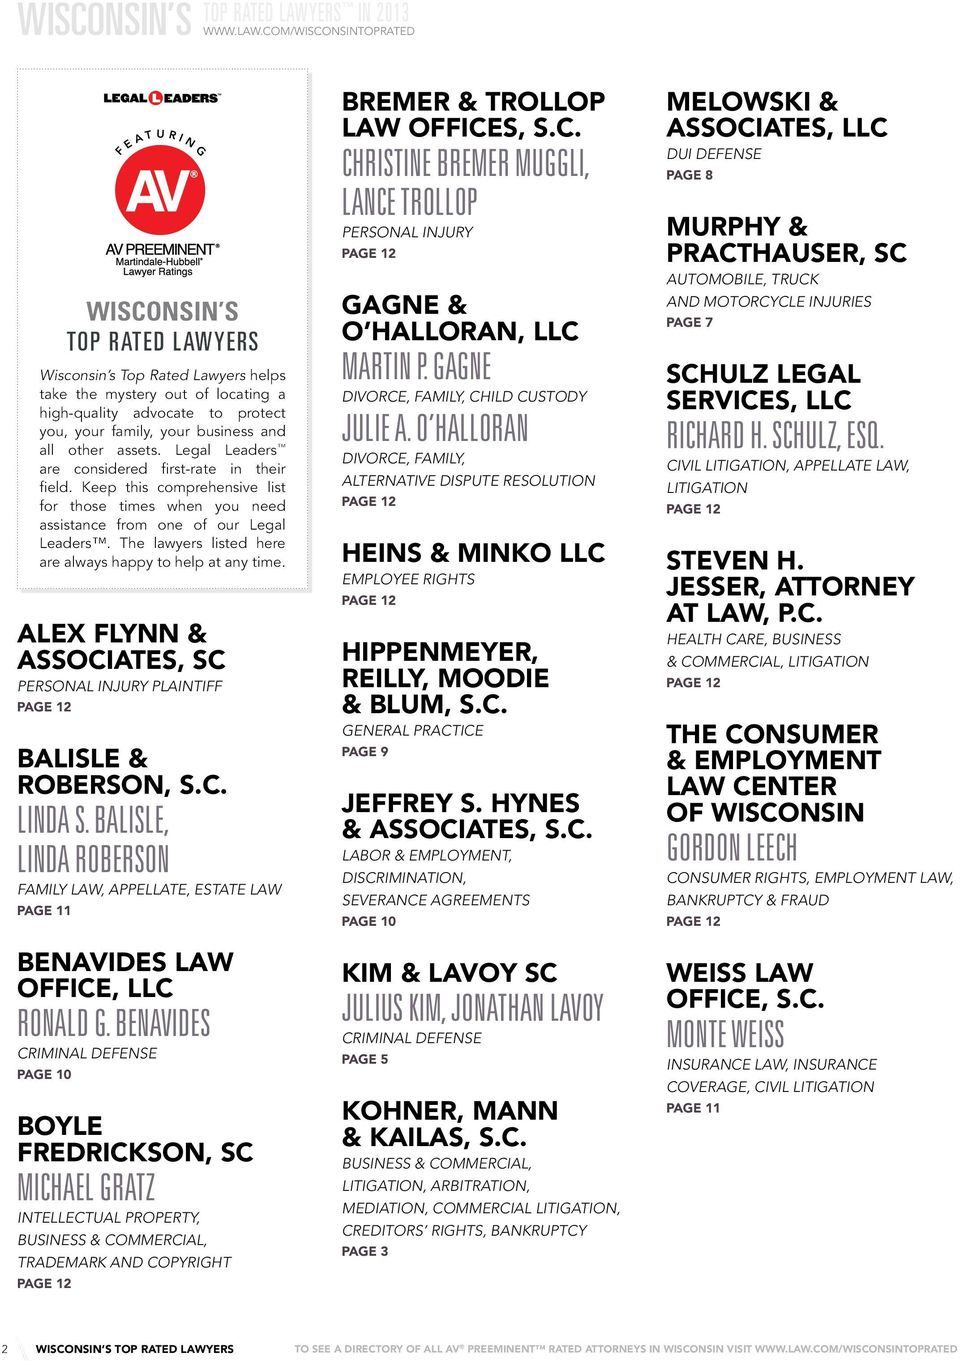 Benavides Criminal Defense Page 10 F E A T Boyle Fredrickson, SC Michael Gratz Intellectual Property, Business & Commercial, Trademark and Copyright Page 12 U Wisconsin s top rated lawyers Wisconsin